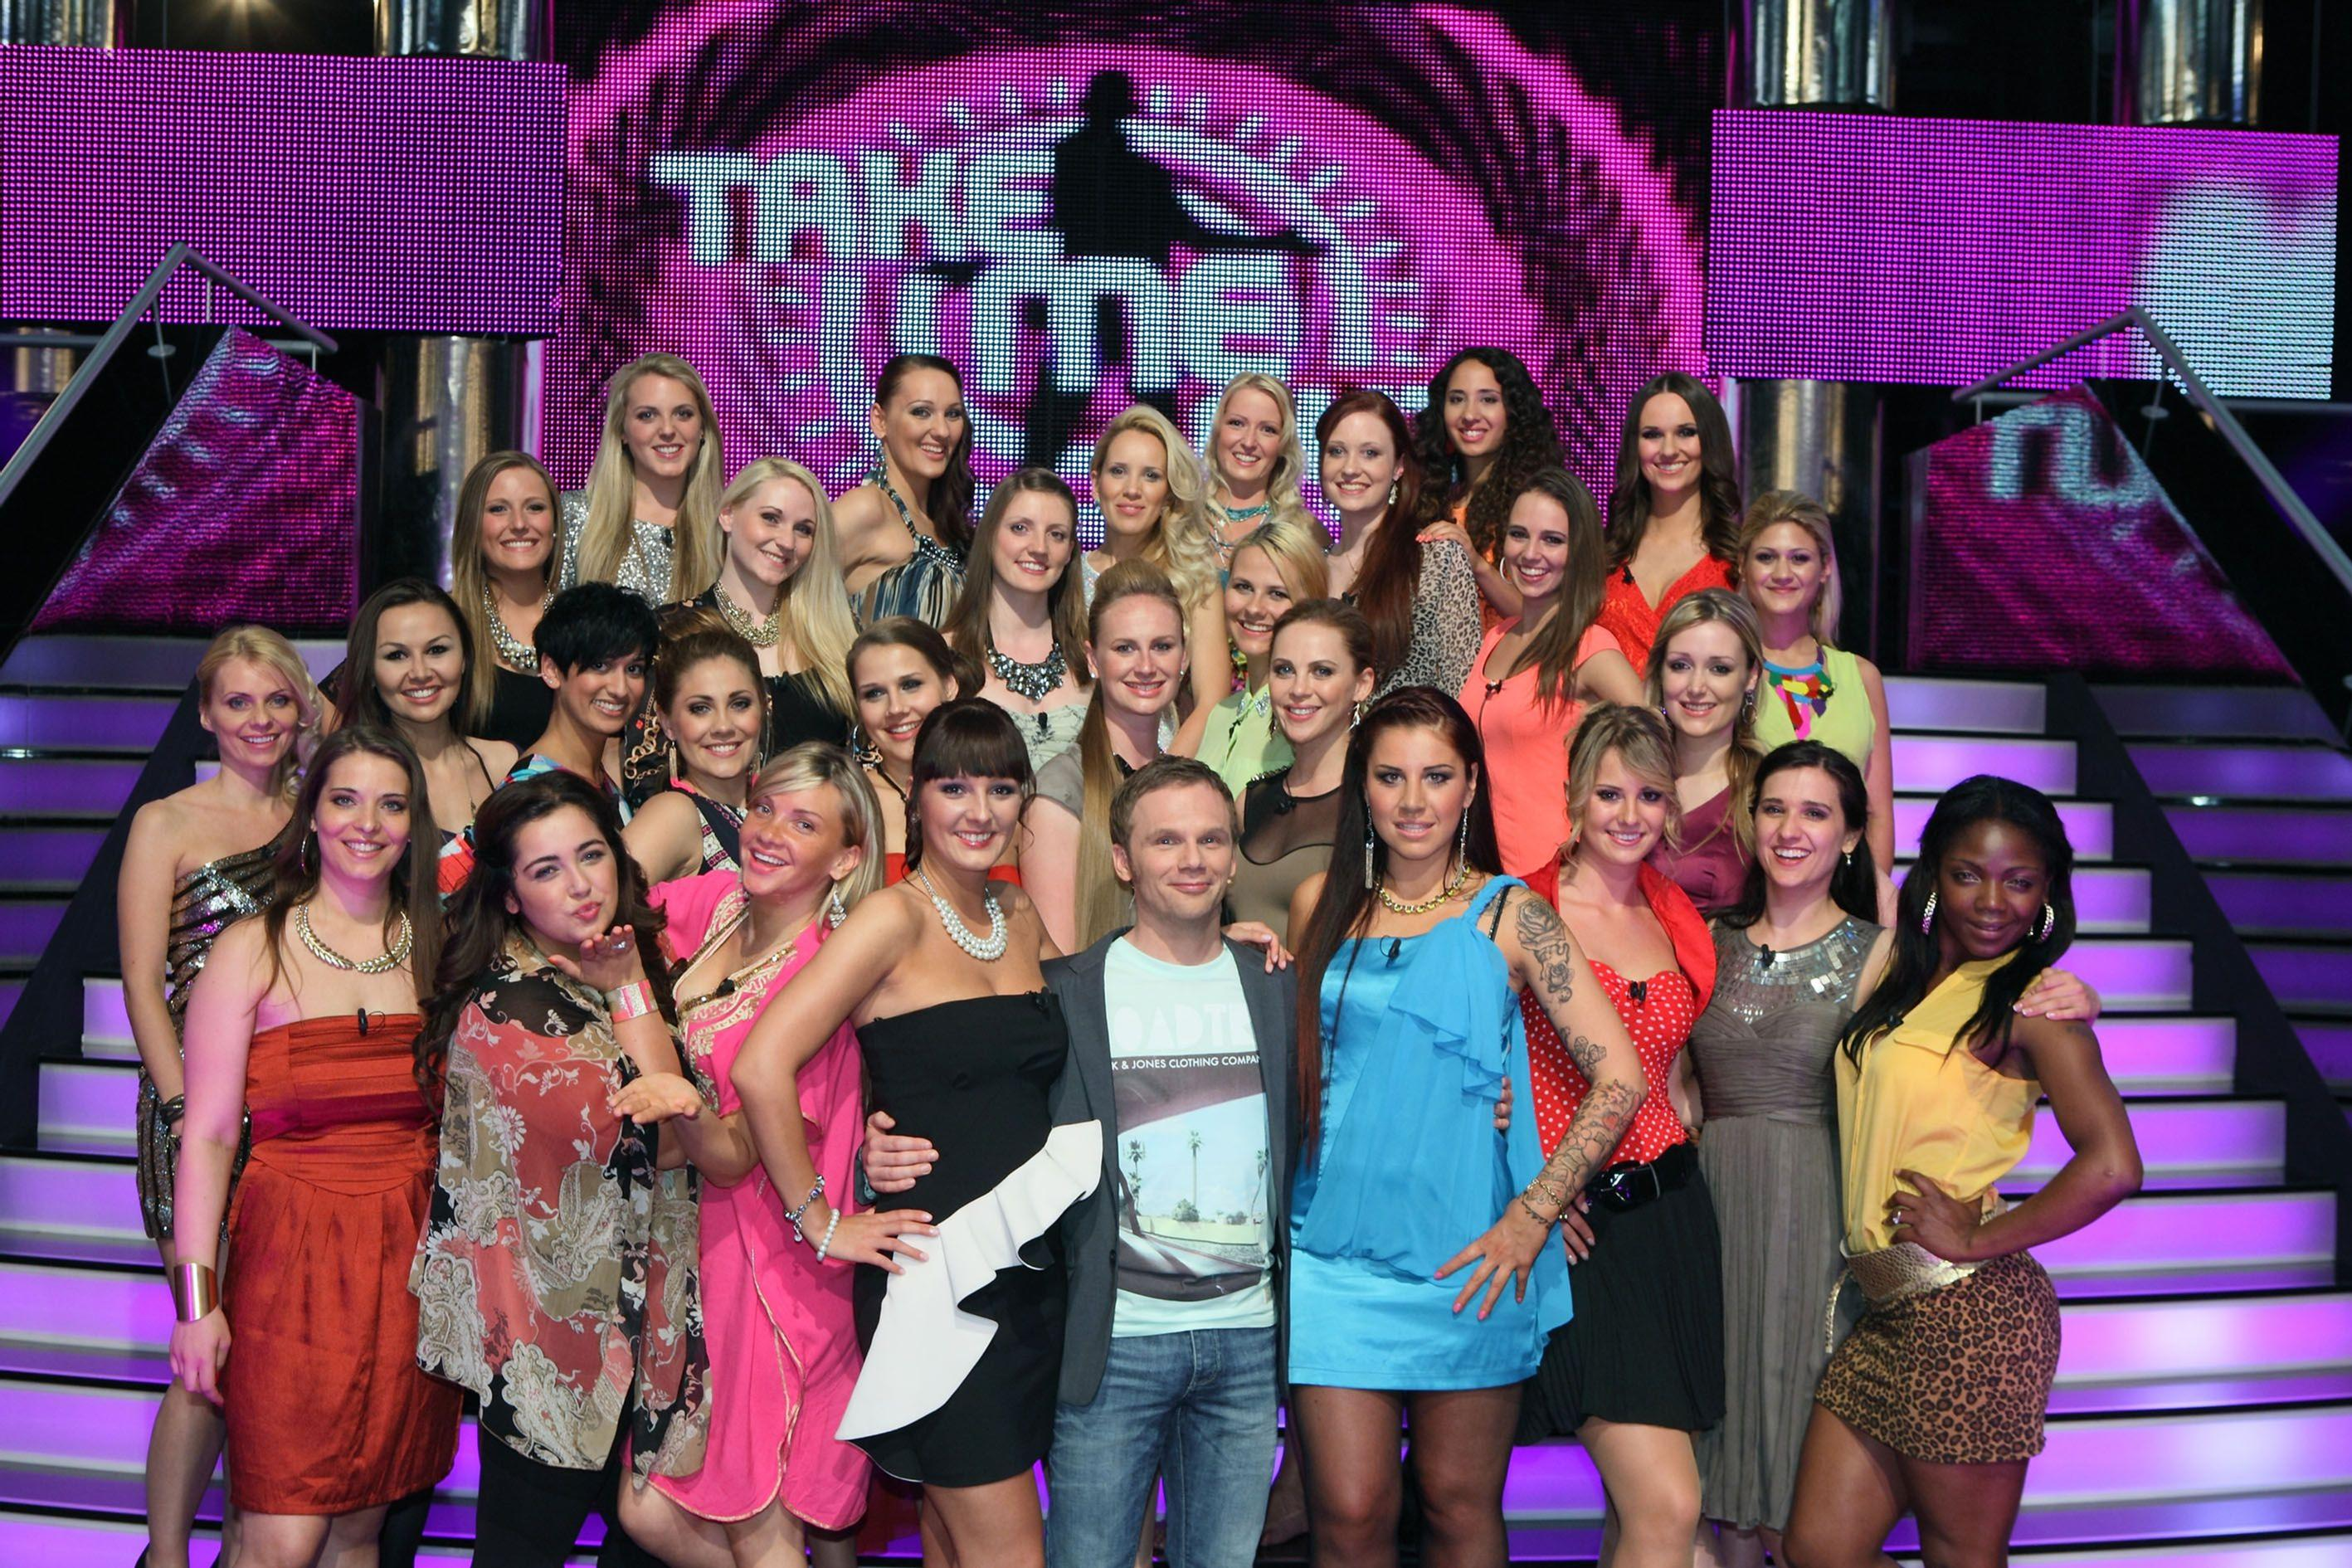 Take Me Out Die Single Männer Am 08032014 Bei Rtl Stars On Tv